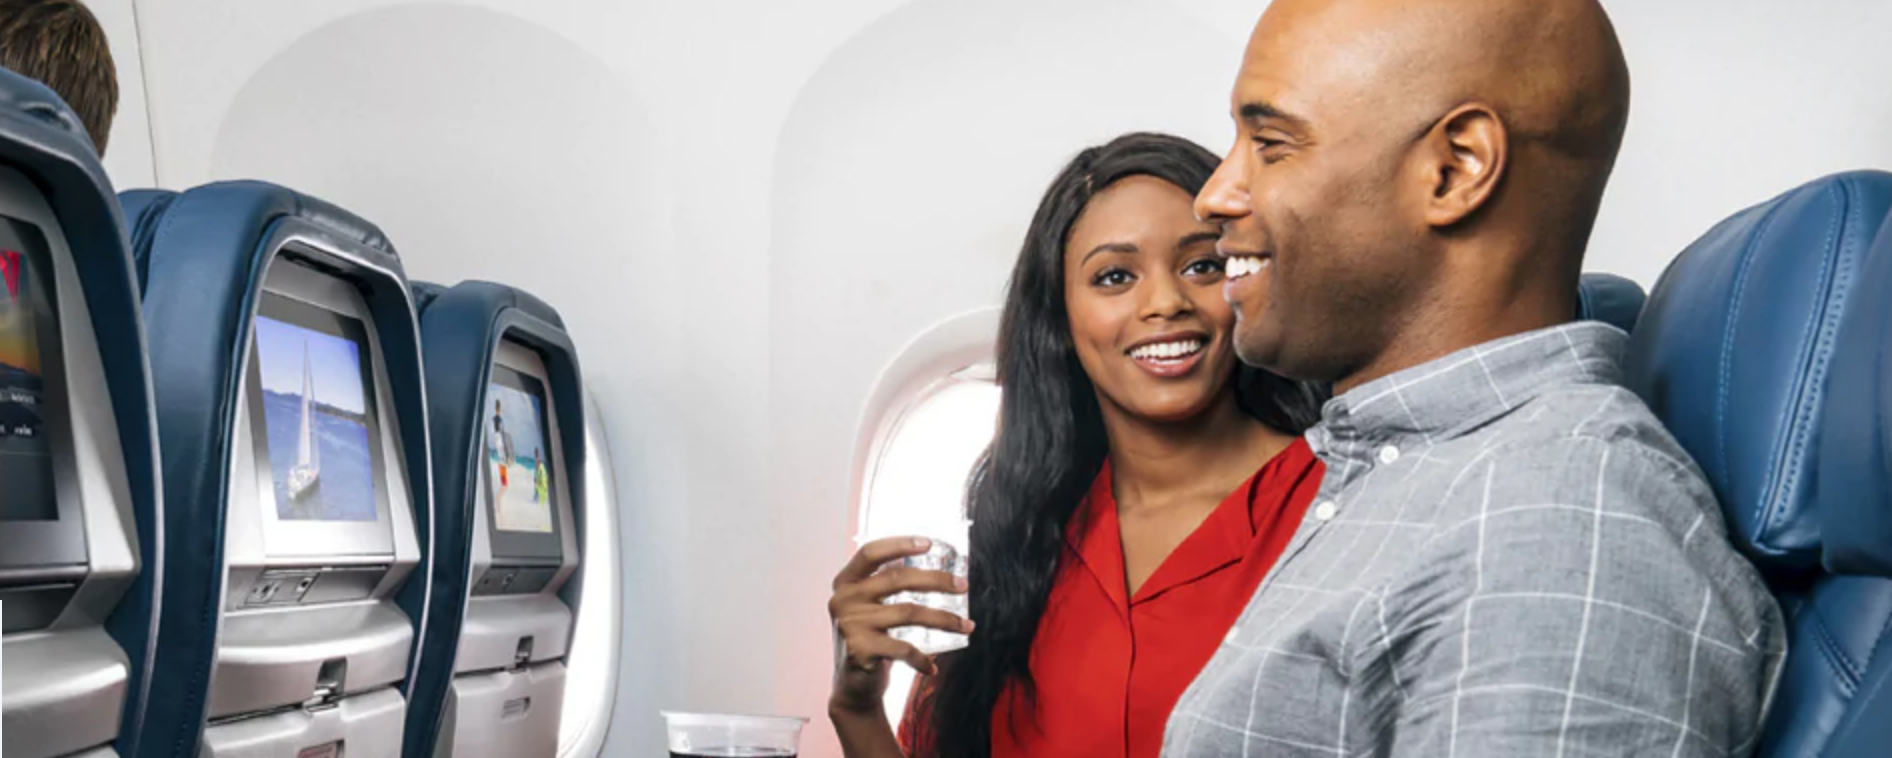 man and woman flying on a Delta airplane